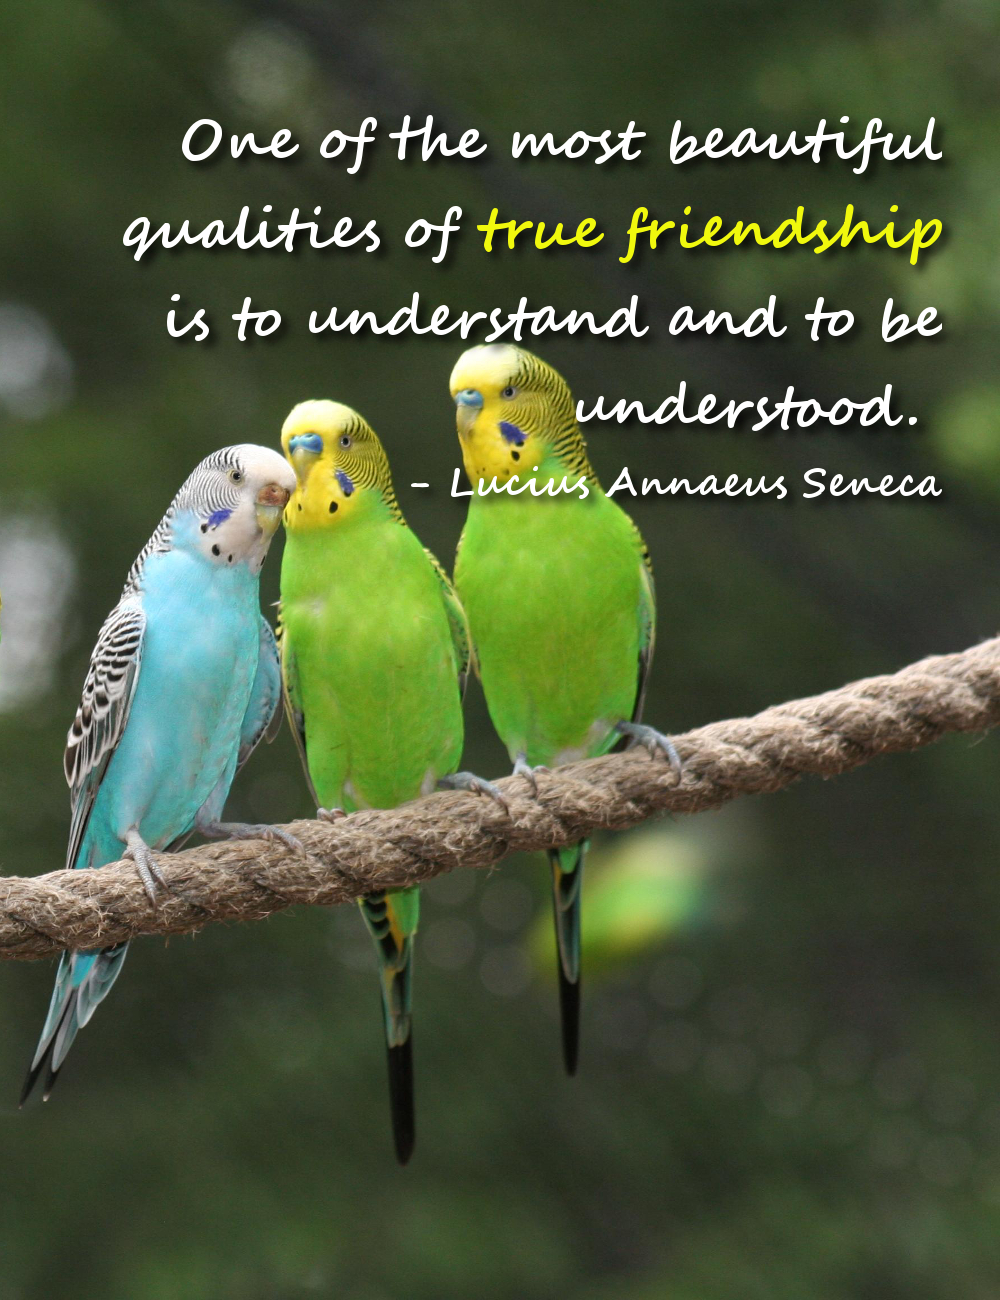 Quotes On Friendship Quotes Poems Prayers And Words Of Wisdom